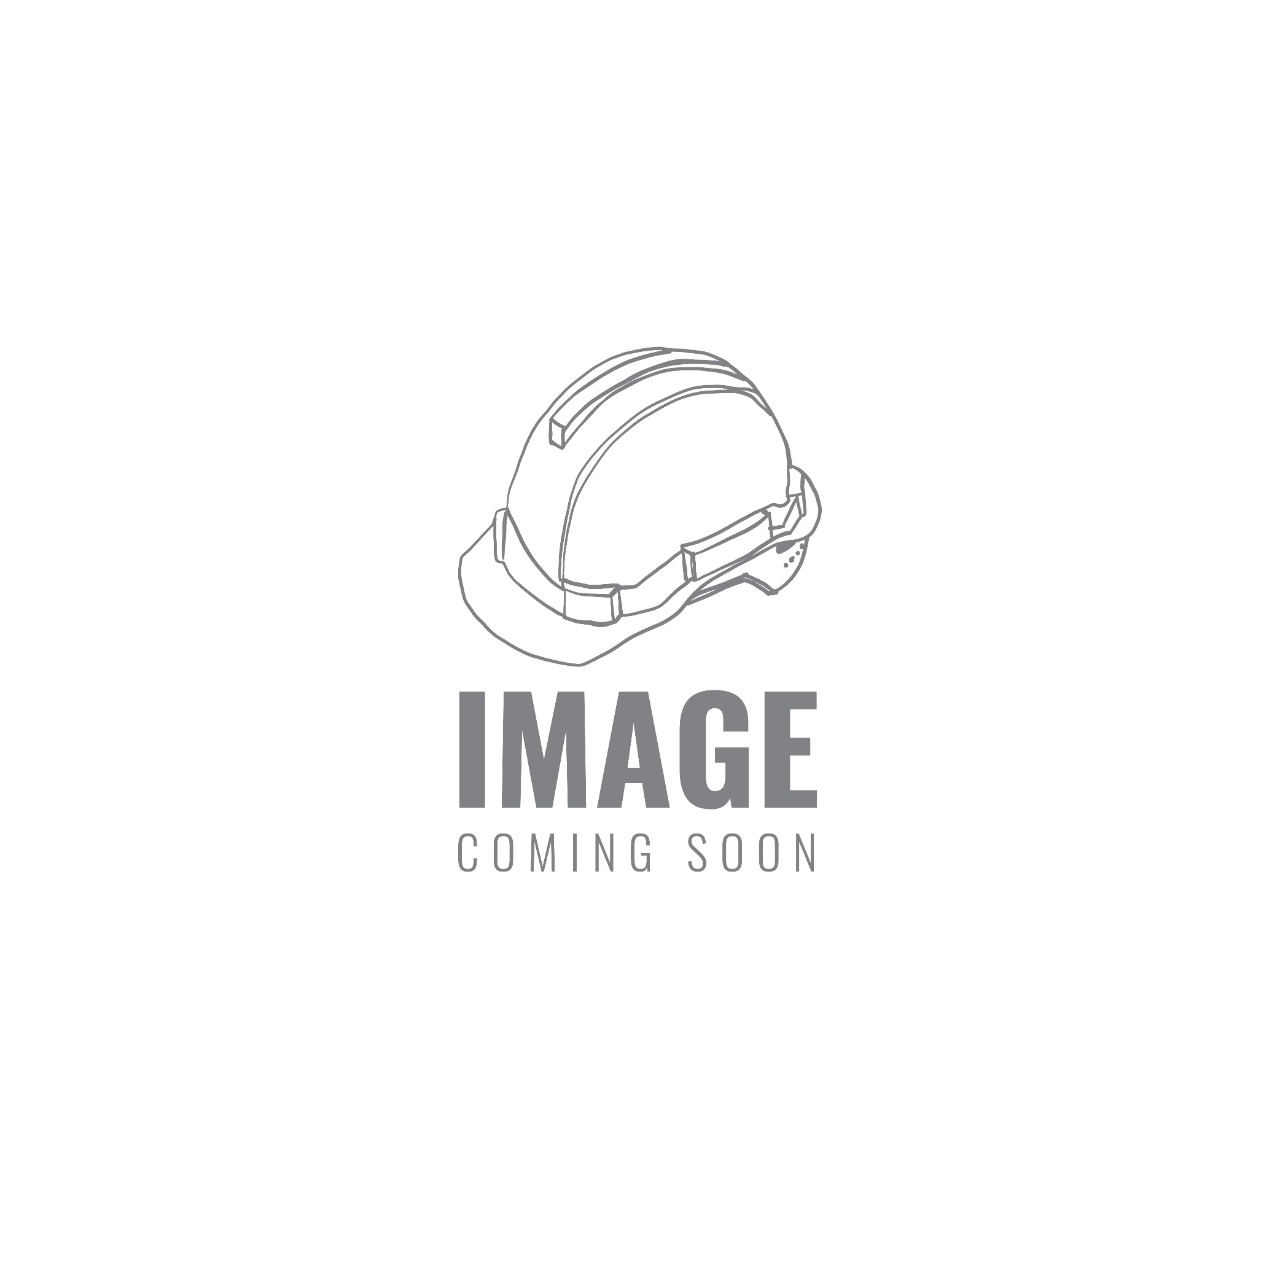 Nomex® Comfort Pant, Flame Resistance, NFPA 2113, UL